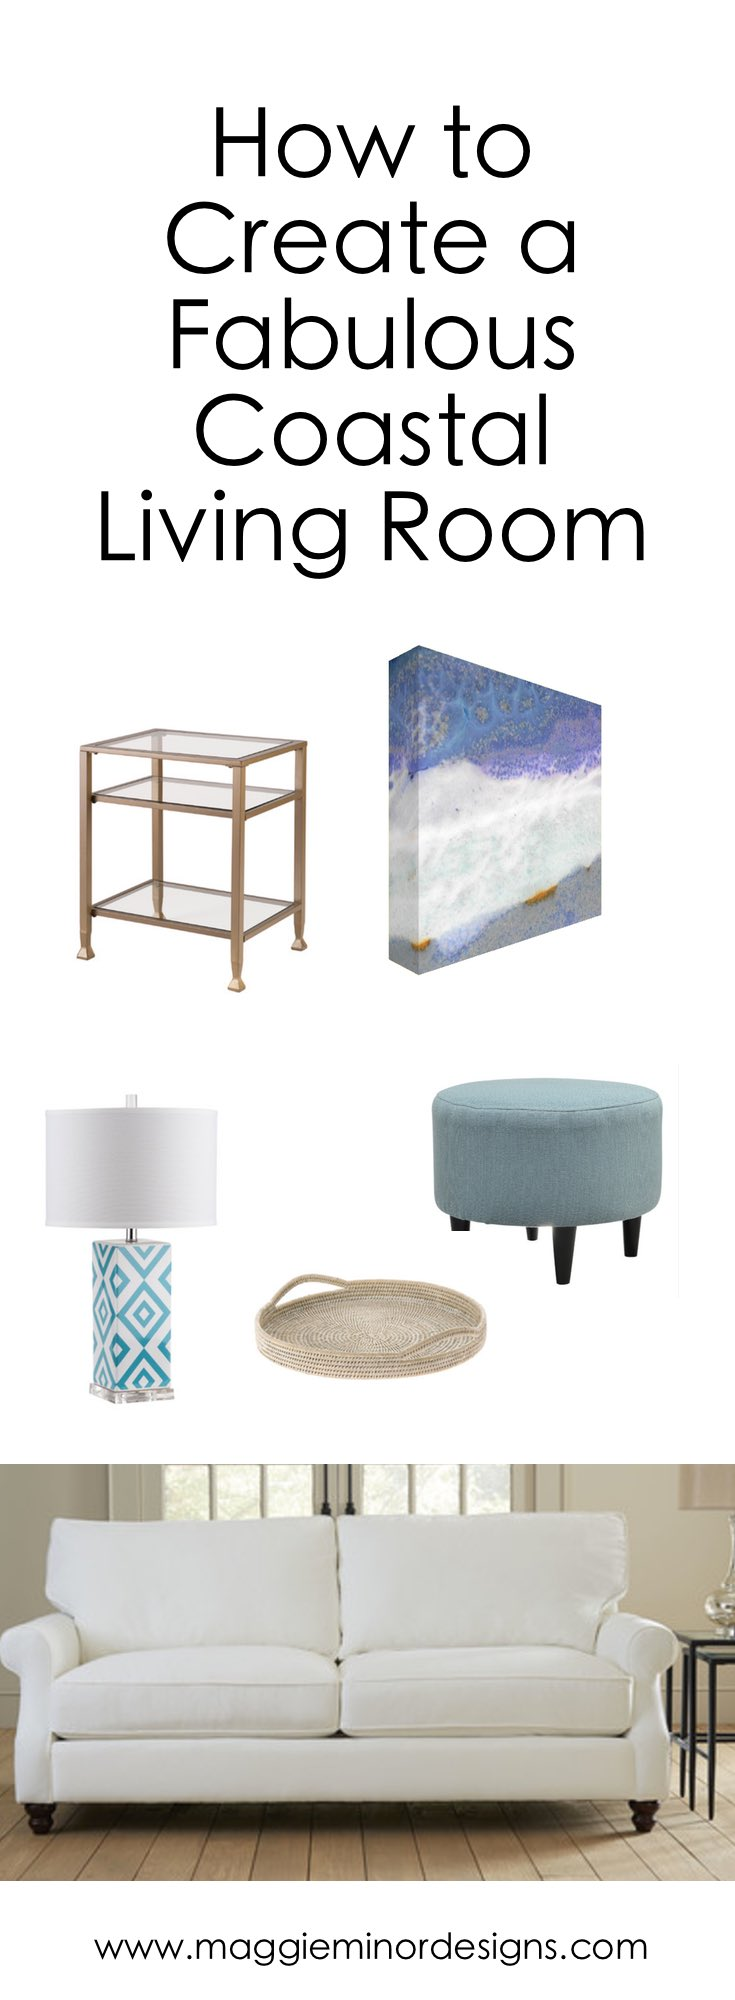 How to Create a Fabulous Coastal Living Room Pinterest.png